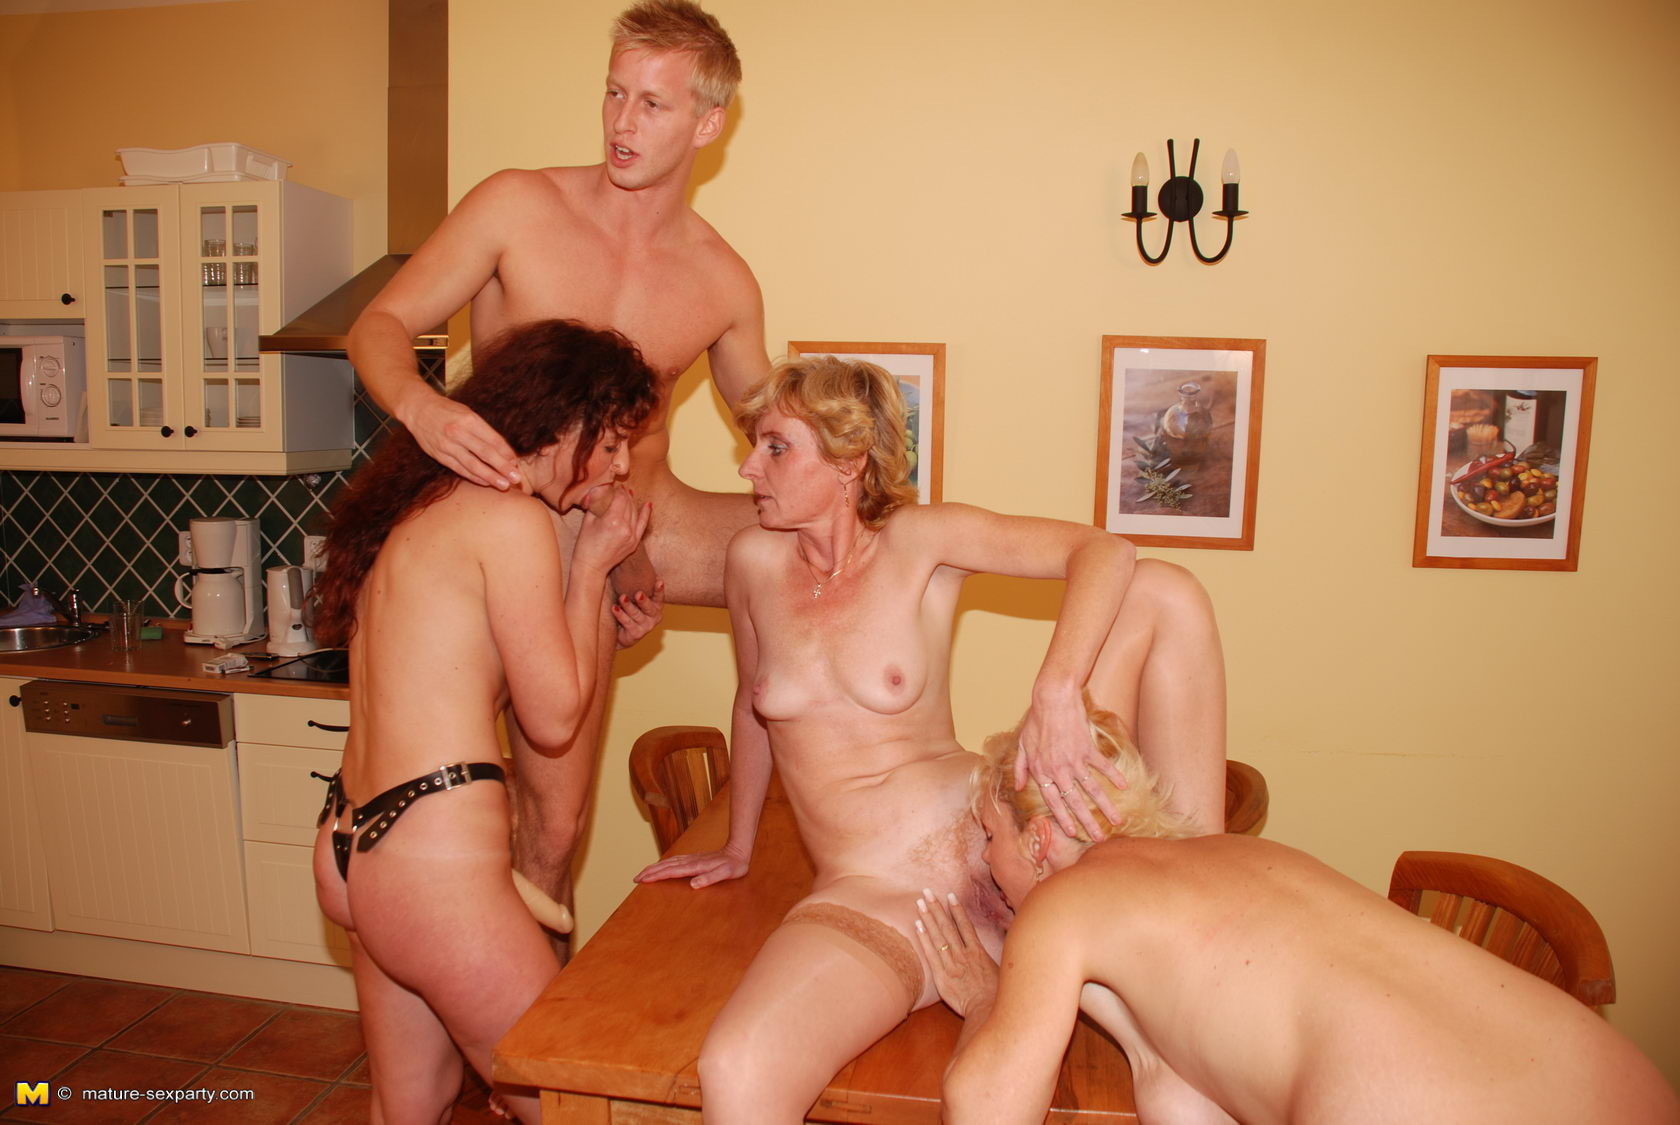 Russian Mature Blonde Boy